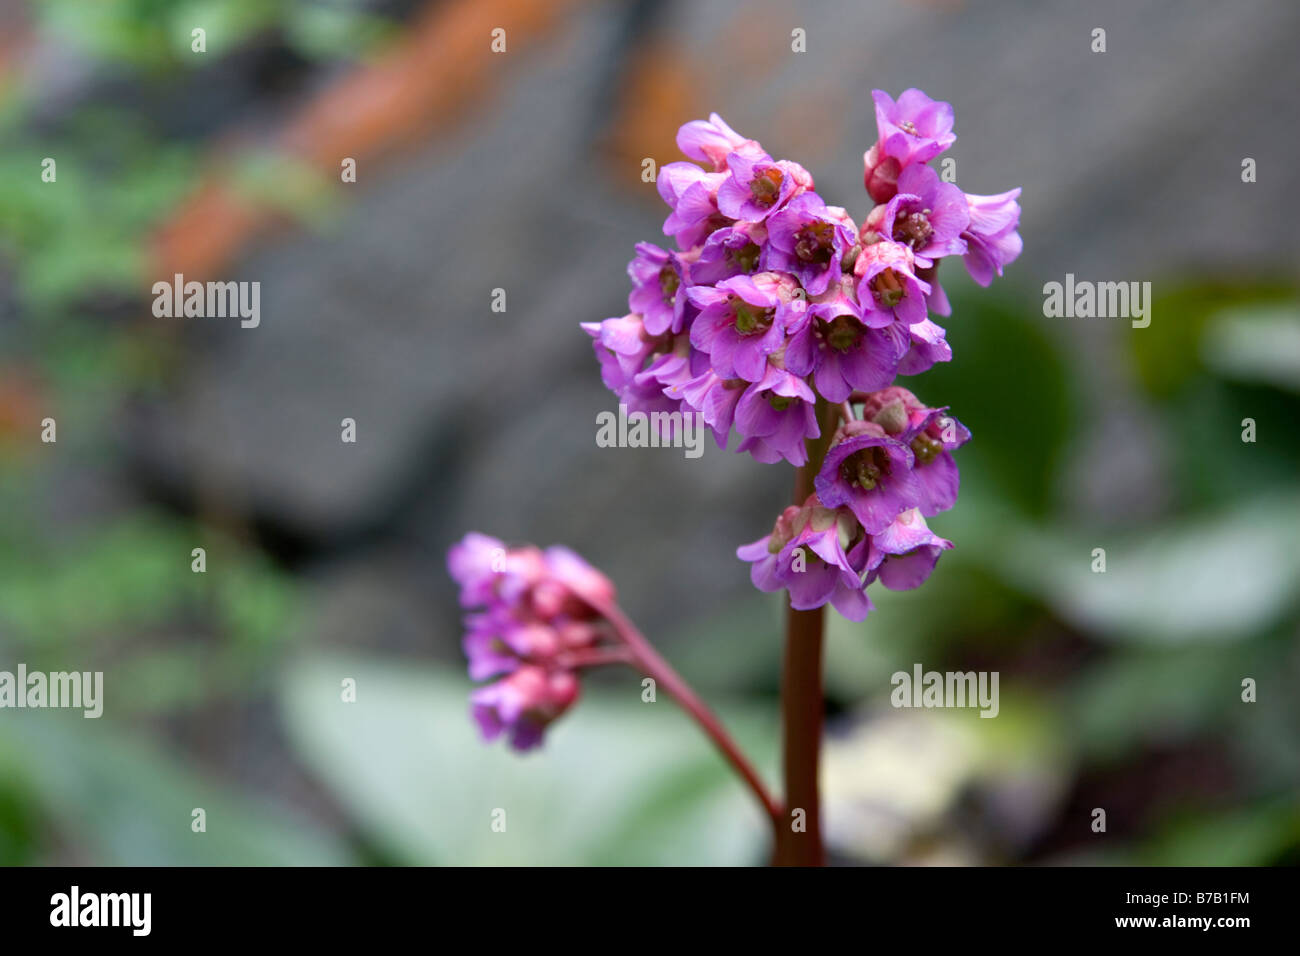 A wild flower at Kanas national park in Xinjiang in China. - Stock Image